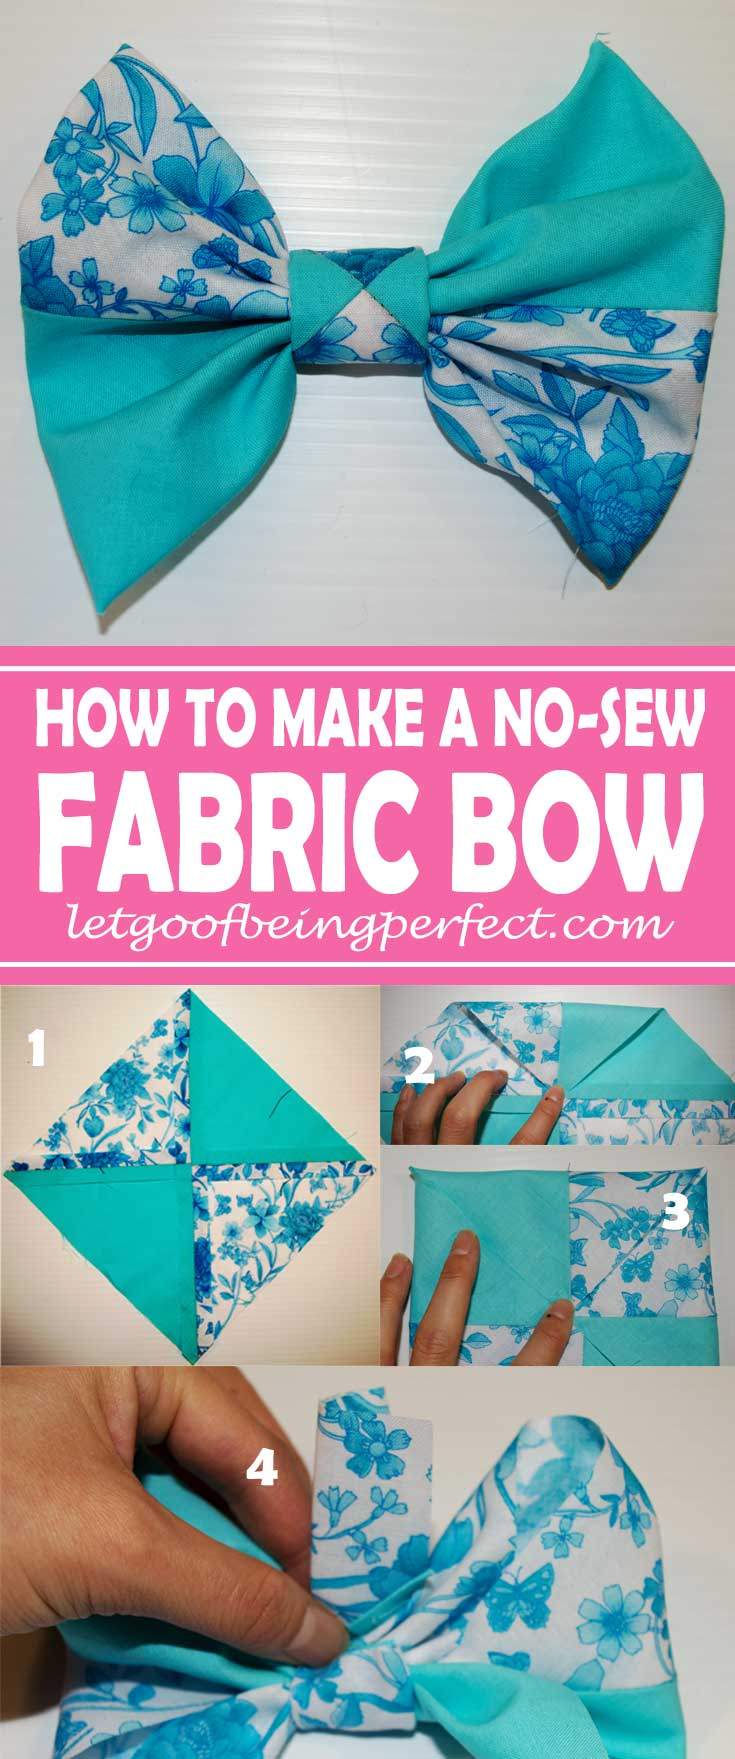 Making Fabric Bows ... Bows, Bows, Bows Everywhere! Making fabric bows is super simple. Step-by-step DIY tutorial - NO SEWING needed. Great for crafts and refashions. You don't need a square of fabric, either. Make your own square with fat quarters or fabric scraps, even some of those castaways from clothing or t-shirt refashions. Add hair ties, headbands, shoes, skirts, dresses, sweaters - everything. More awesome tutorials from http://letgoofbeingperfect.com/